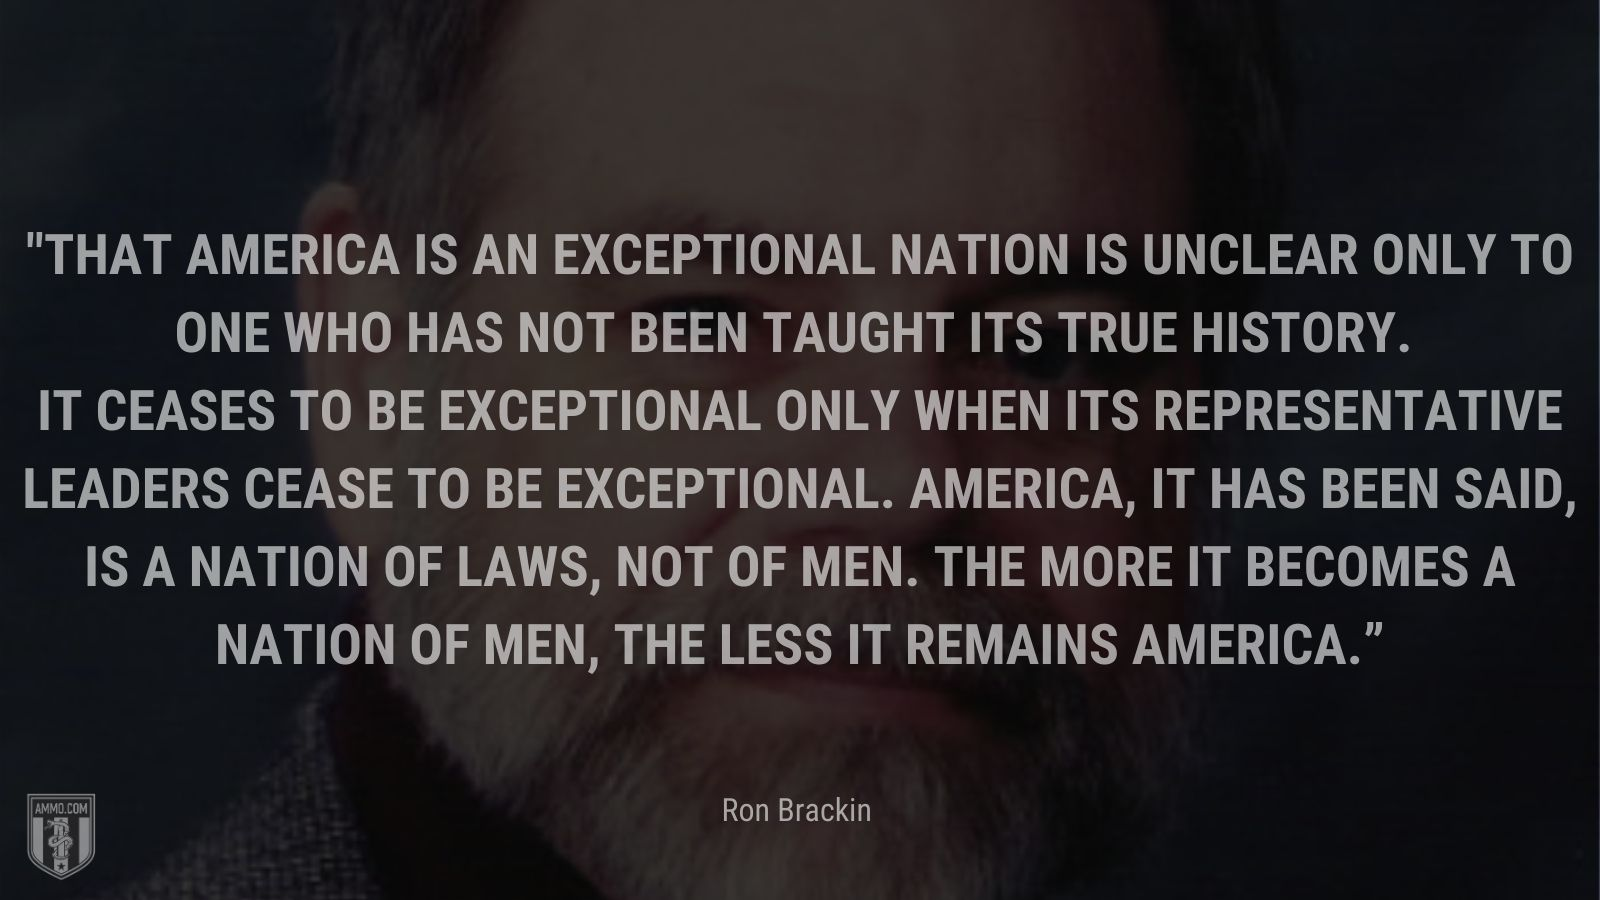 """""""That America is an exceptional nation is unclear only to one who has not been taught its true history. It ceases to be exceptional only when its representative leaders cease to be exceptional. America, it has been said, is a nation of laws, not of men. The more it becomes a nation of men, the less it remains America."""" - Ron Brackin"""